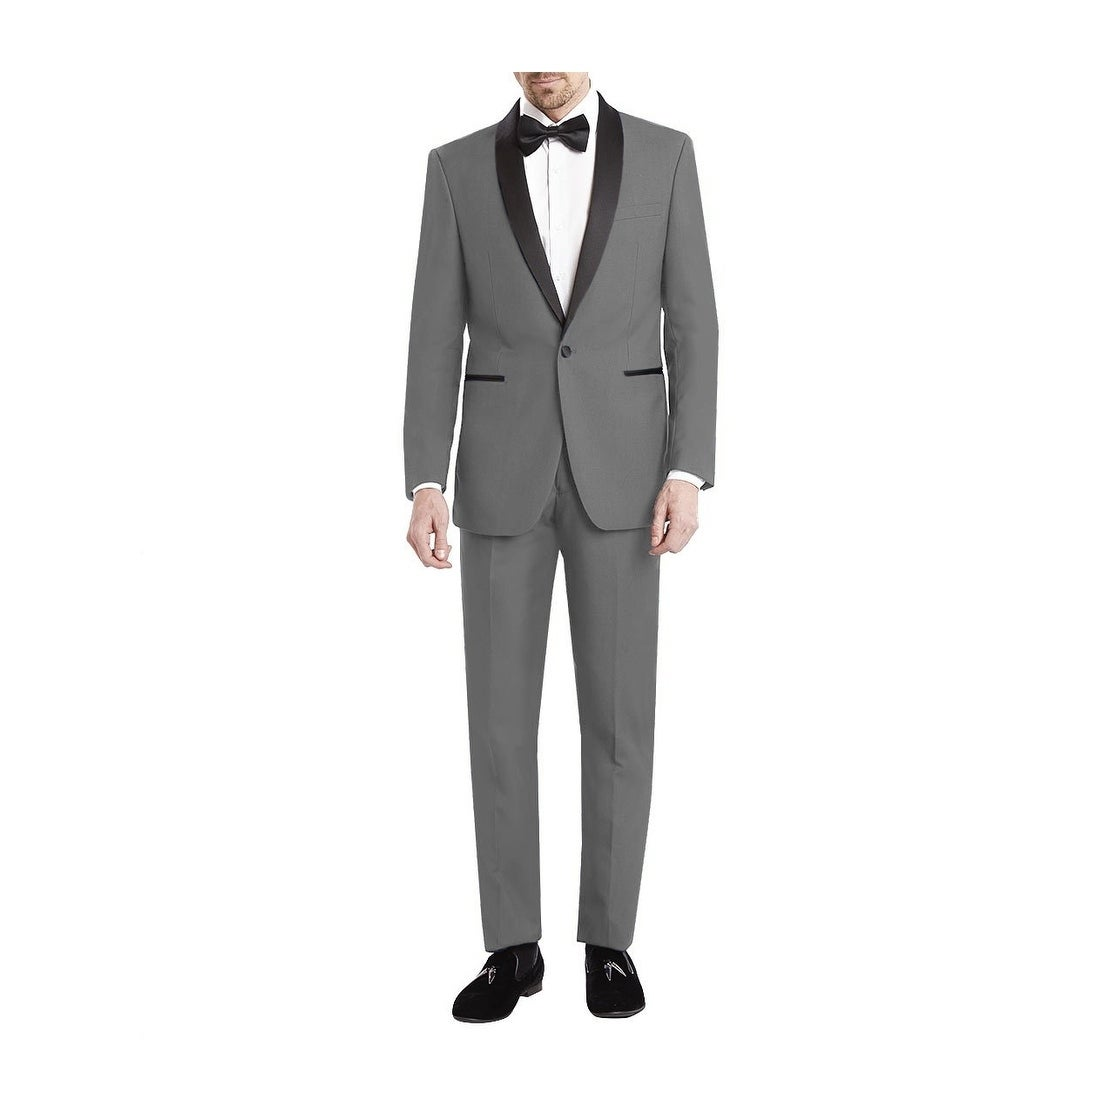 5886d7d087a Shop Gino Vitale Shawl Collar 2 Piece Slim Fit Tuxedo - Free Shipping On  Orders Over $45 - Overstock - 20685643